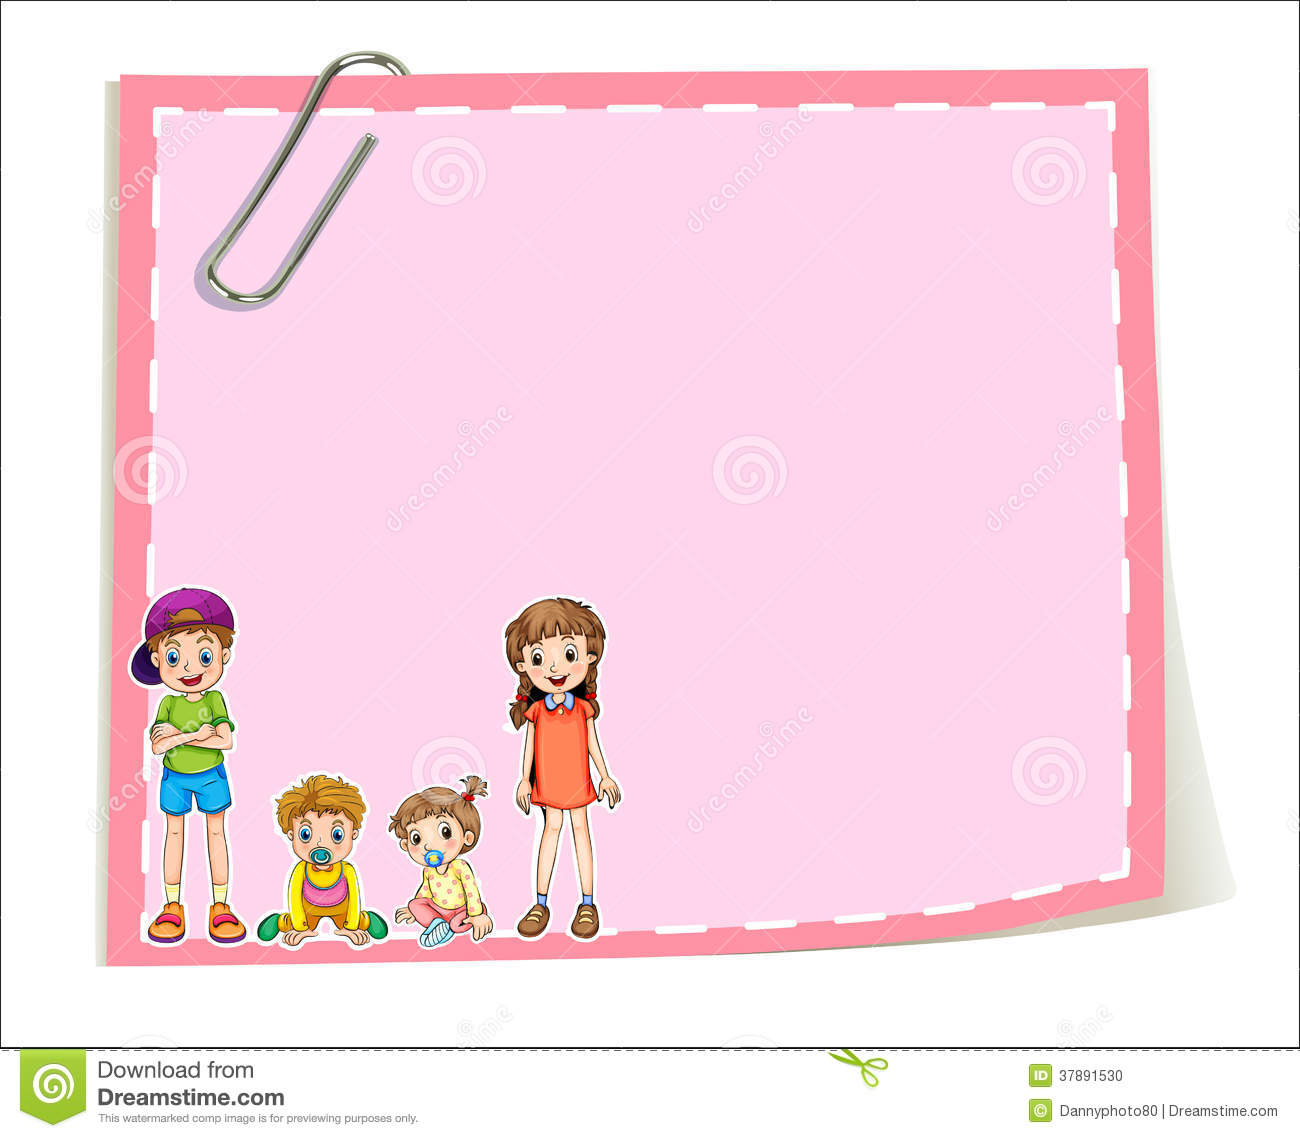 an empty paper templates with children - Templates For Children